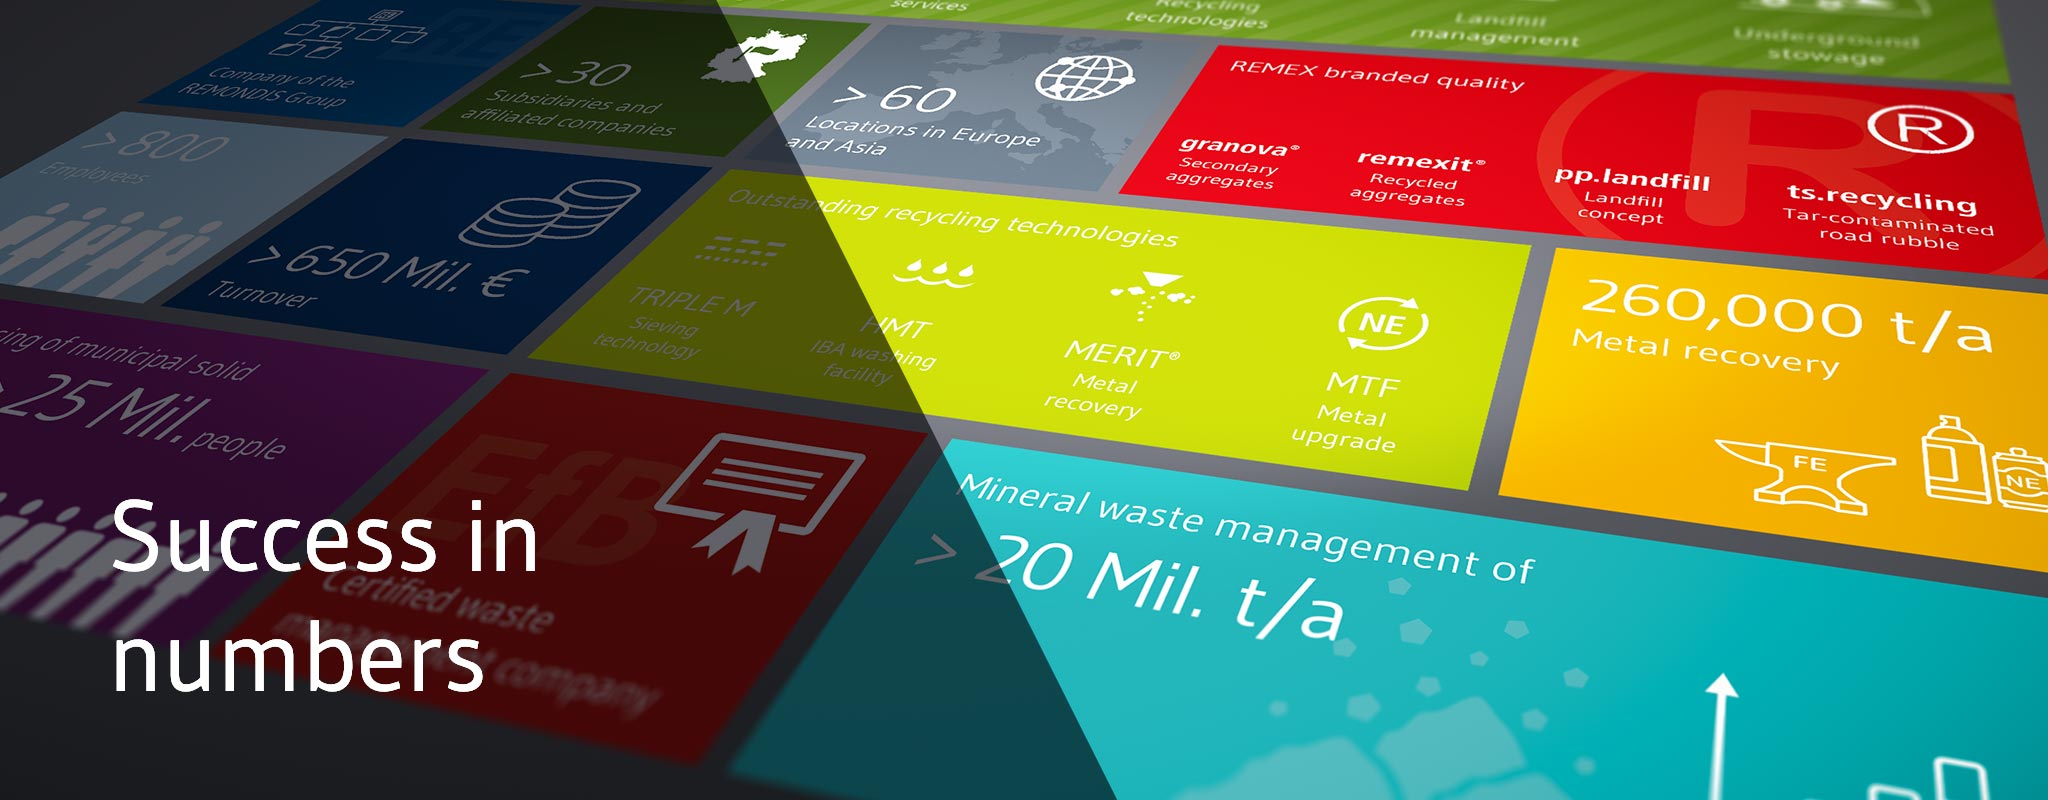 Key figures for waste management and recycling activities REMEX